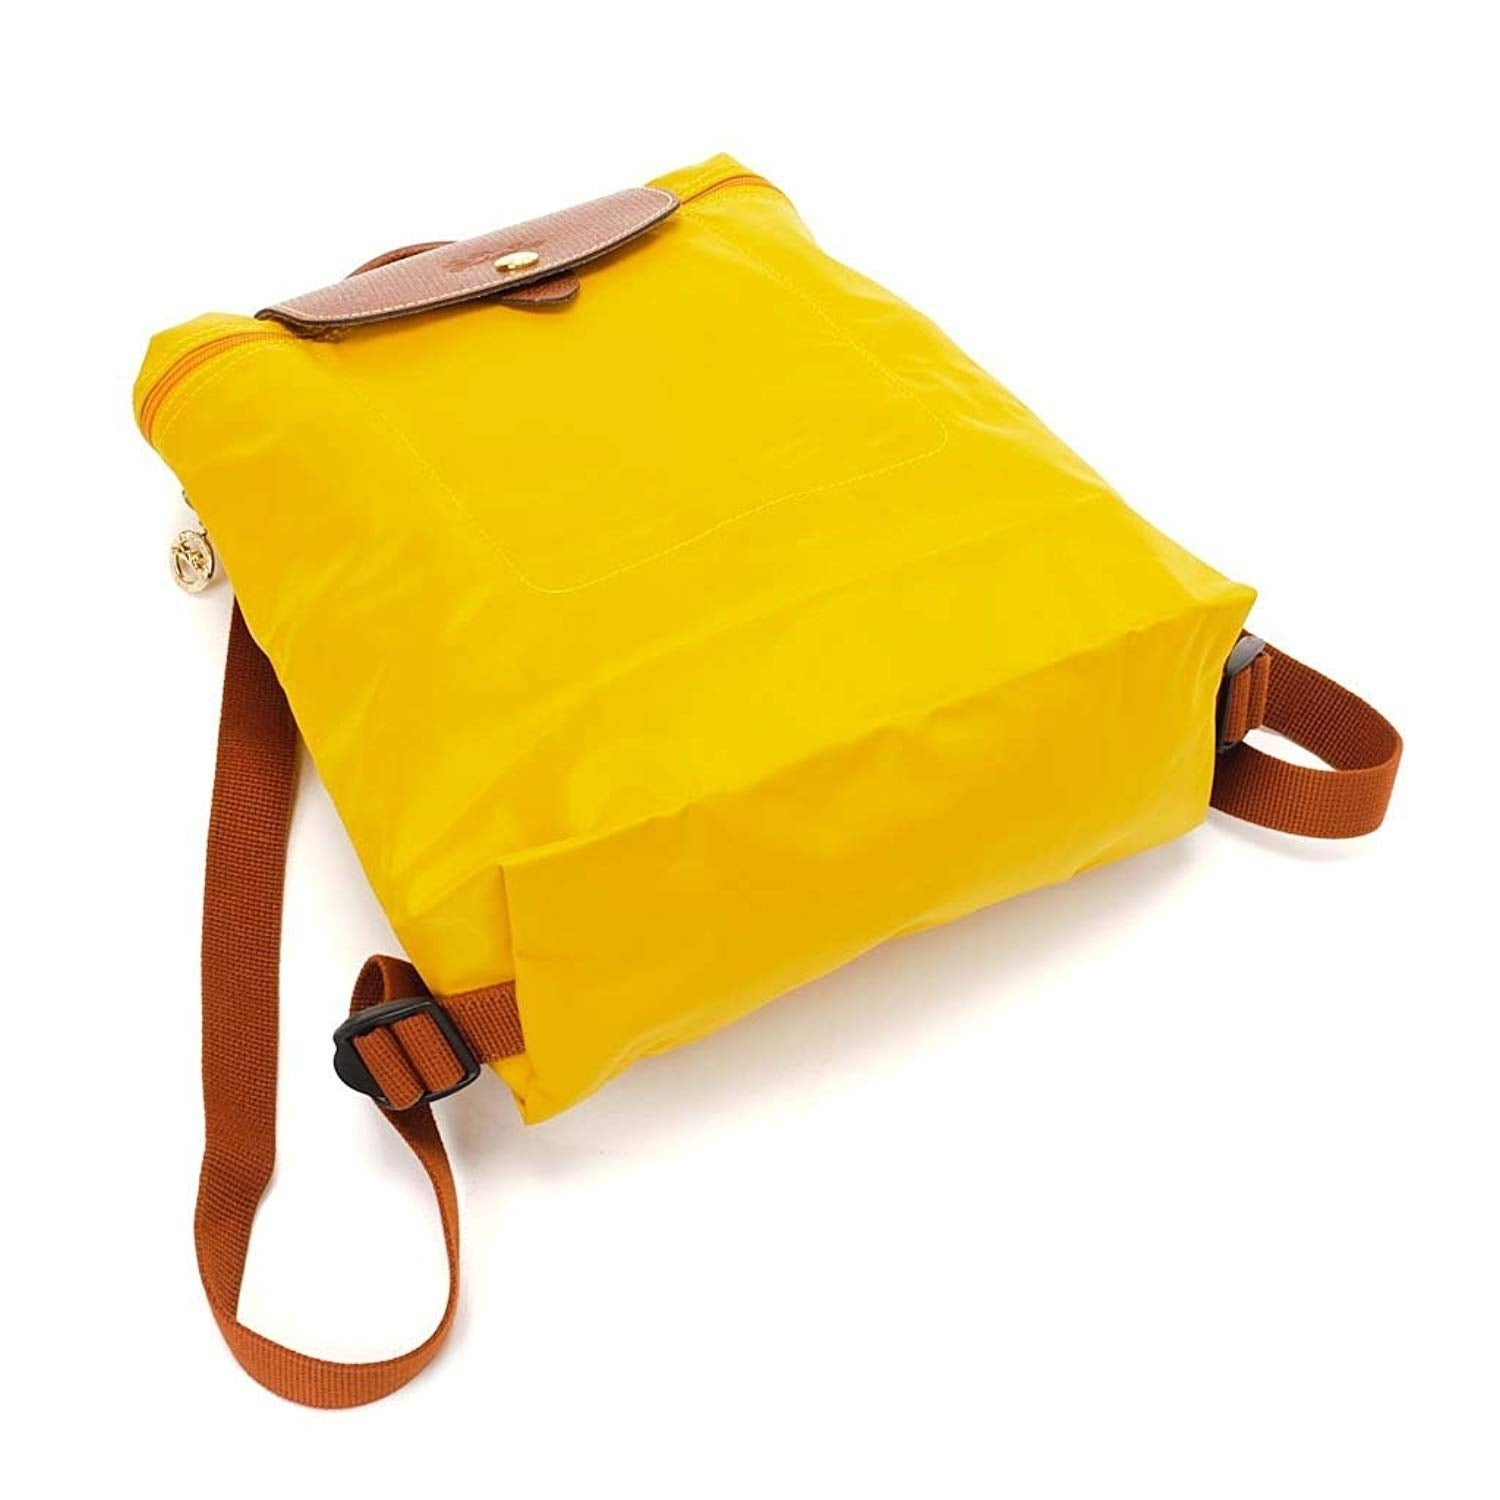 8e5c60f7d163 Shop Longchamp Le Pliage Nylon and Leather Backpack AMARILLO - Free  Shipping Today - Overstock - 24031601